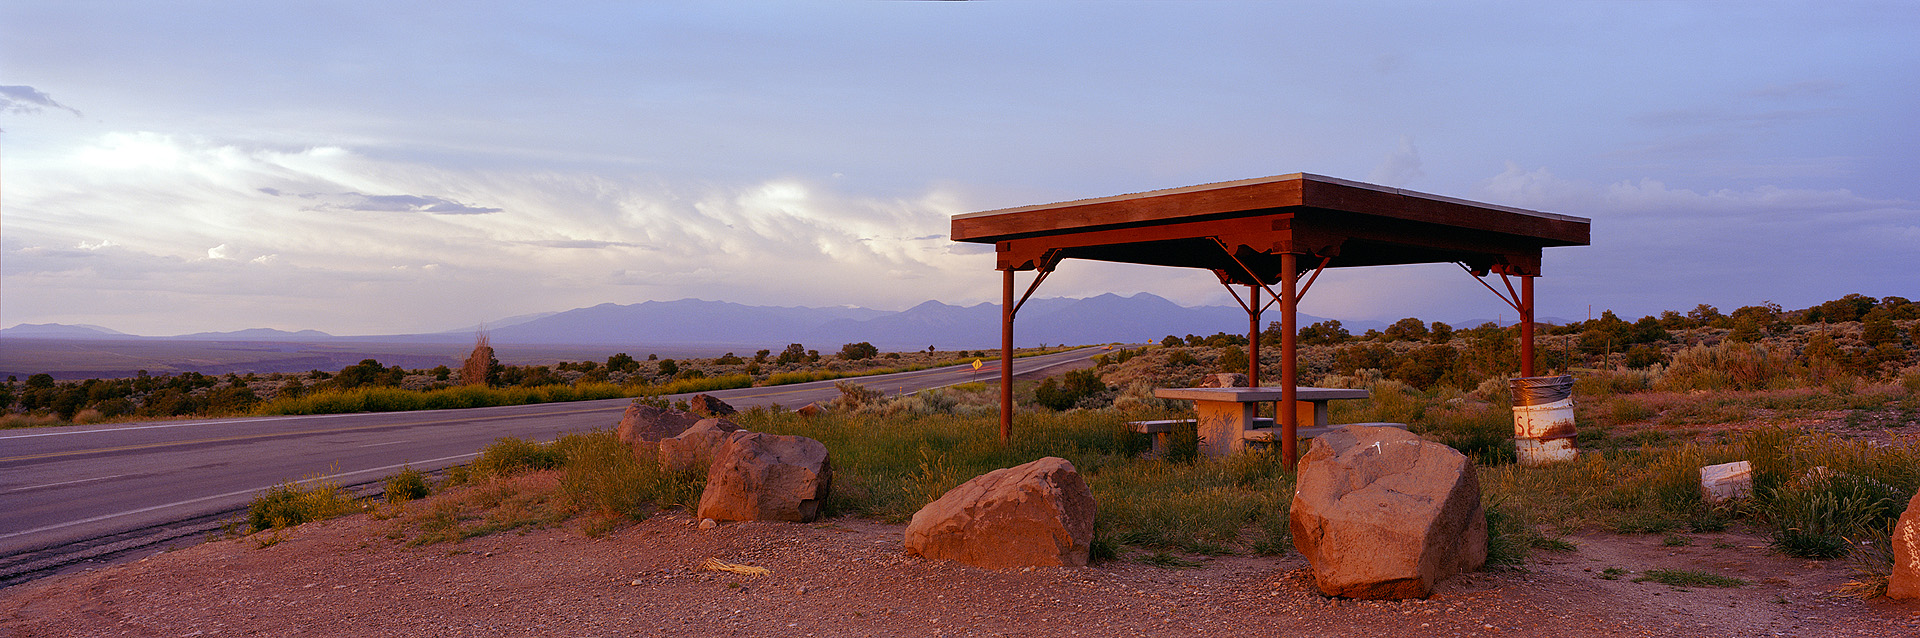 Rest Area HWY 68